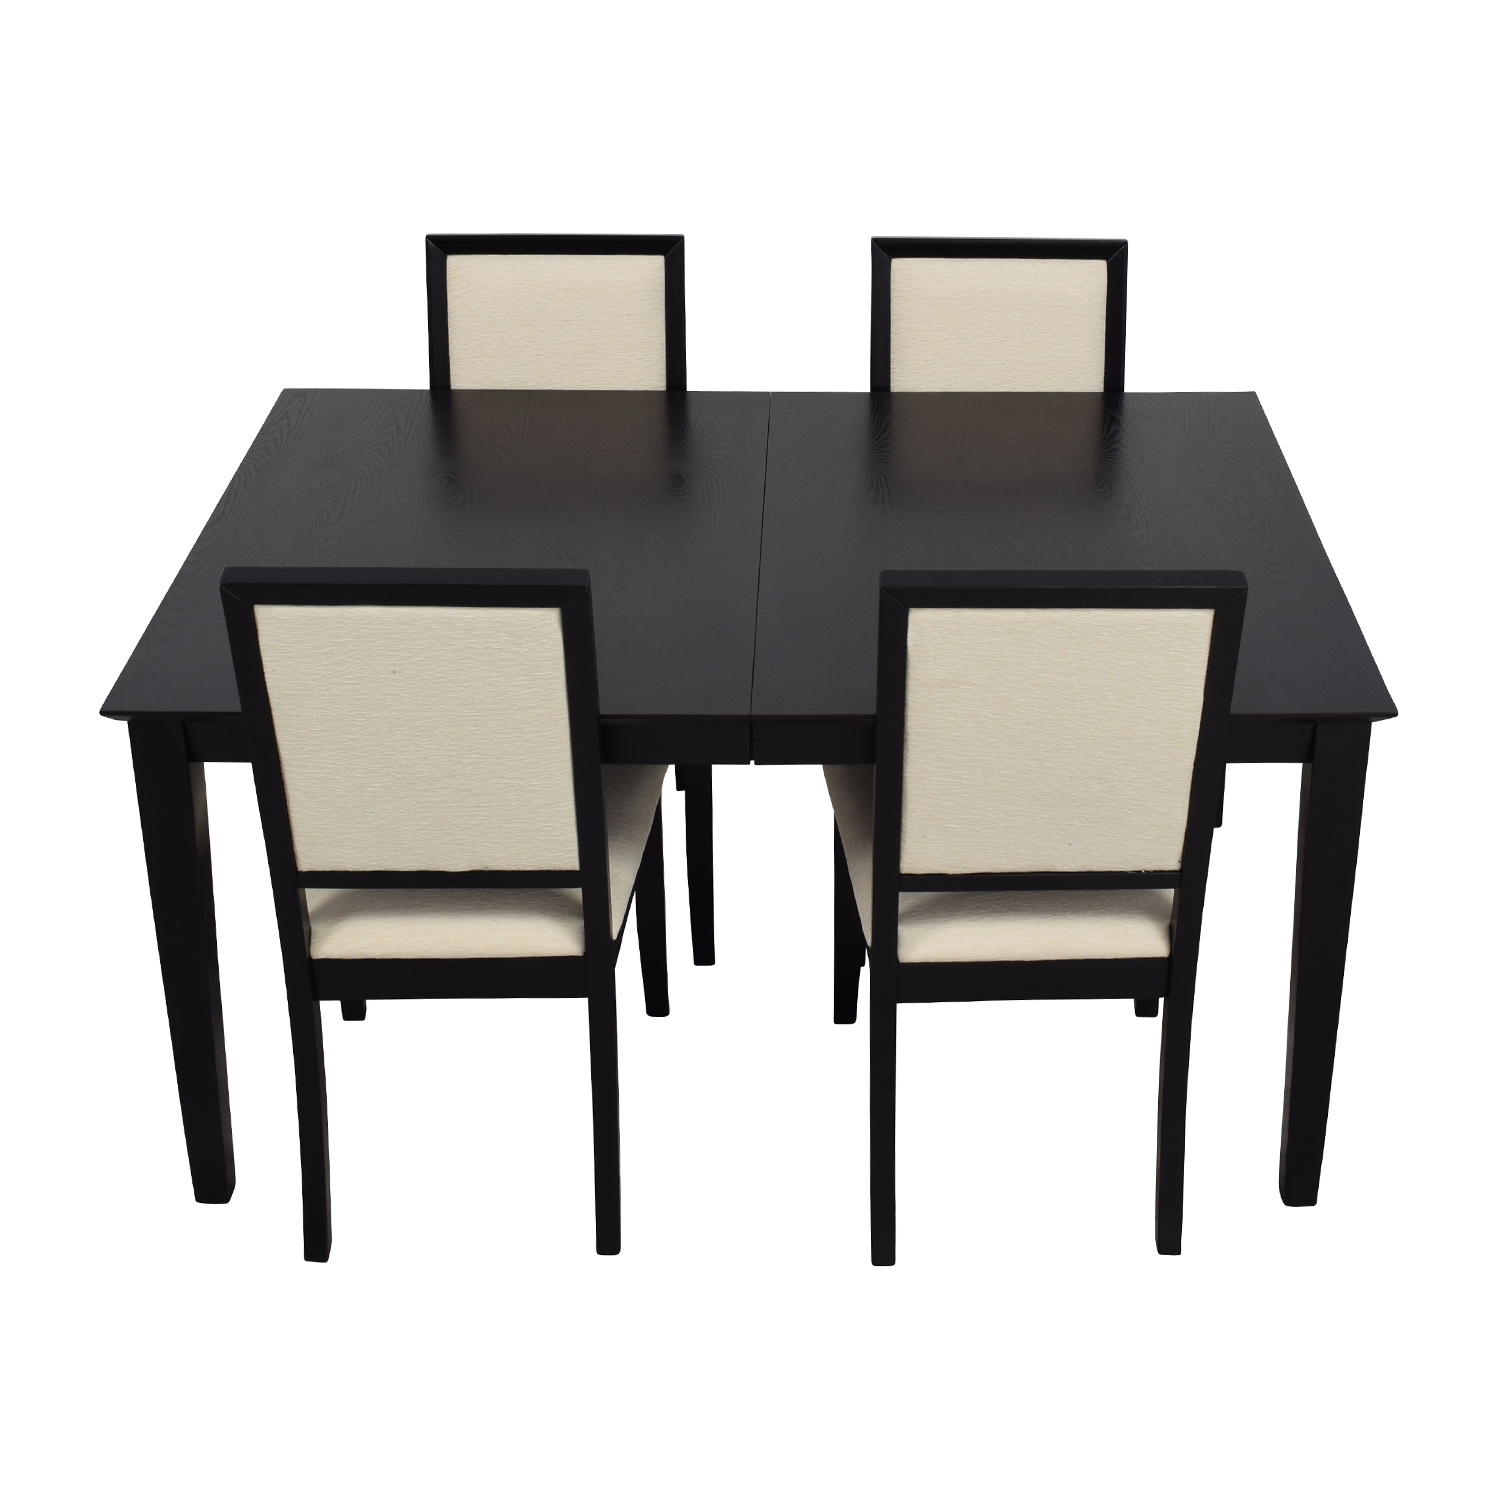 buy Harlem Furniture Black Dining Table with Four Chairs Harlem Furniture